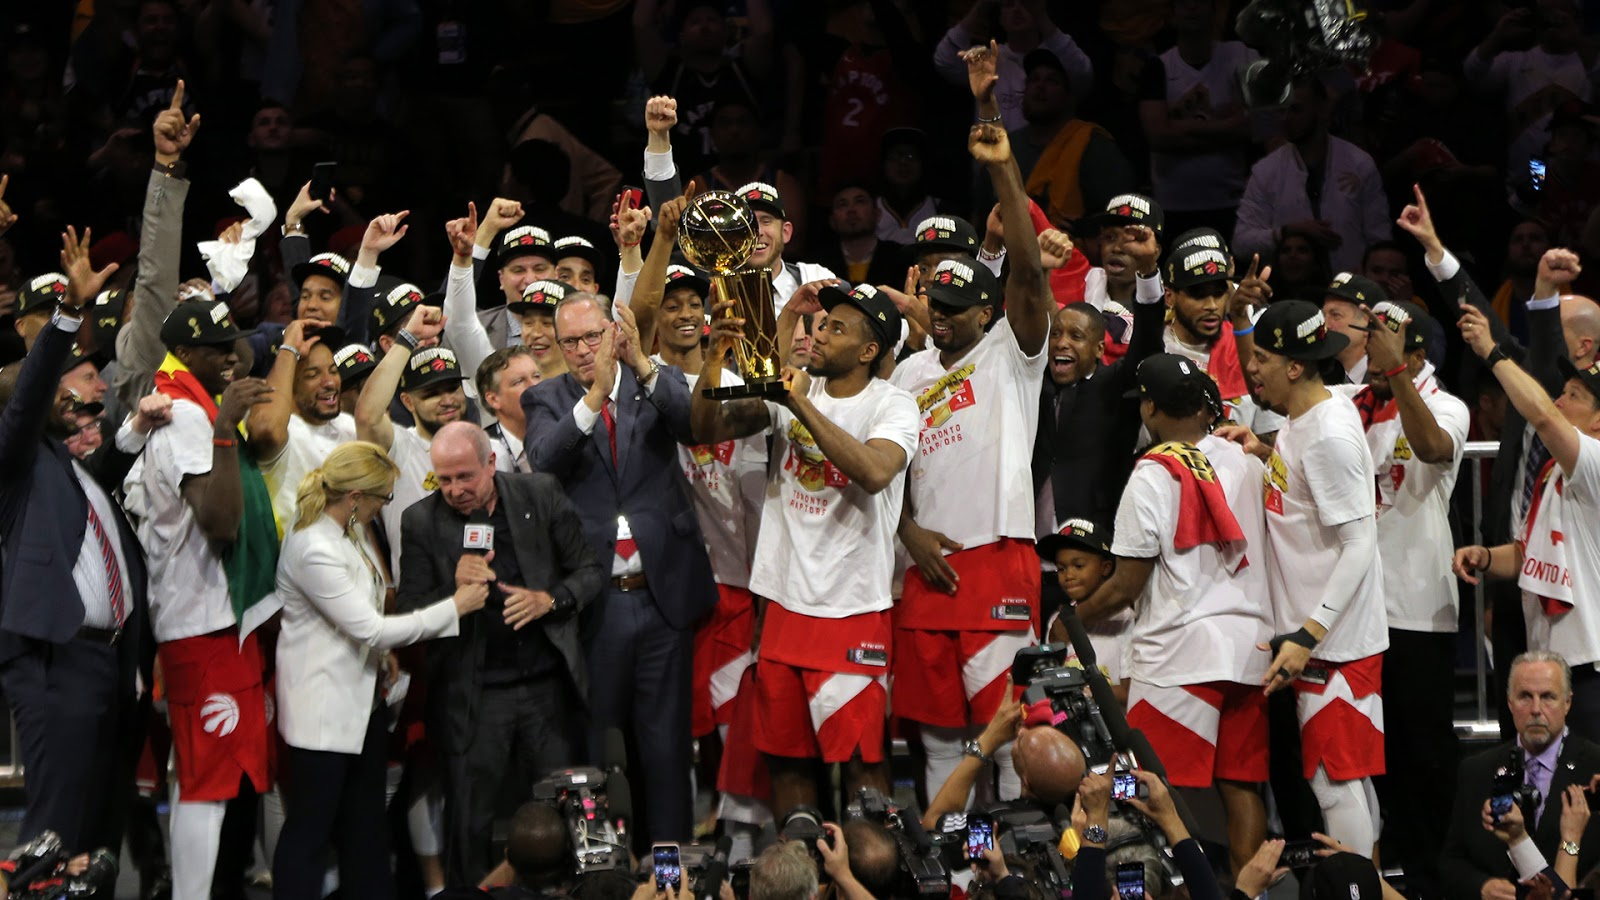 Toronto-Raptors-campeon-NBA